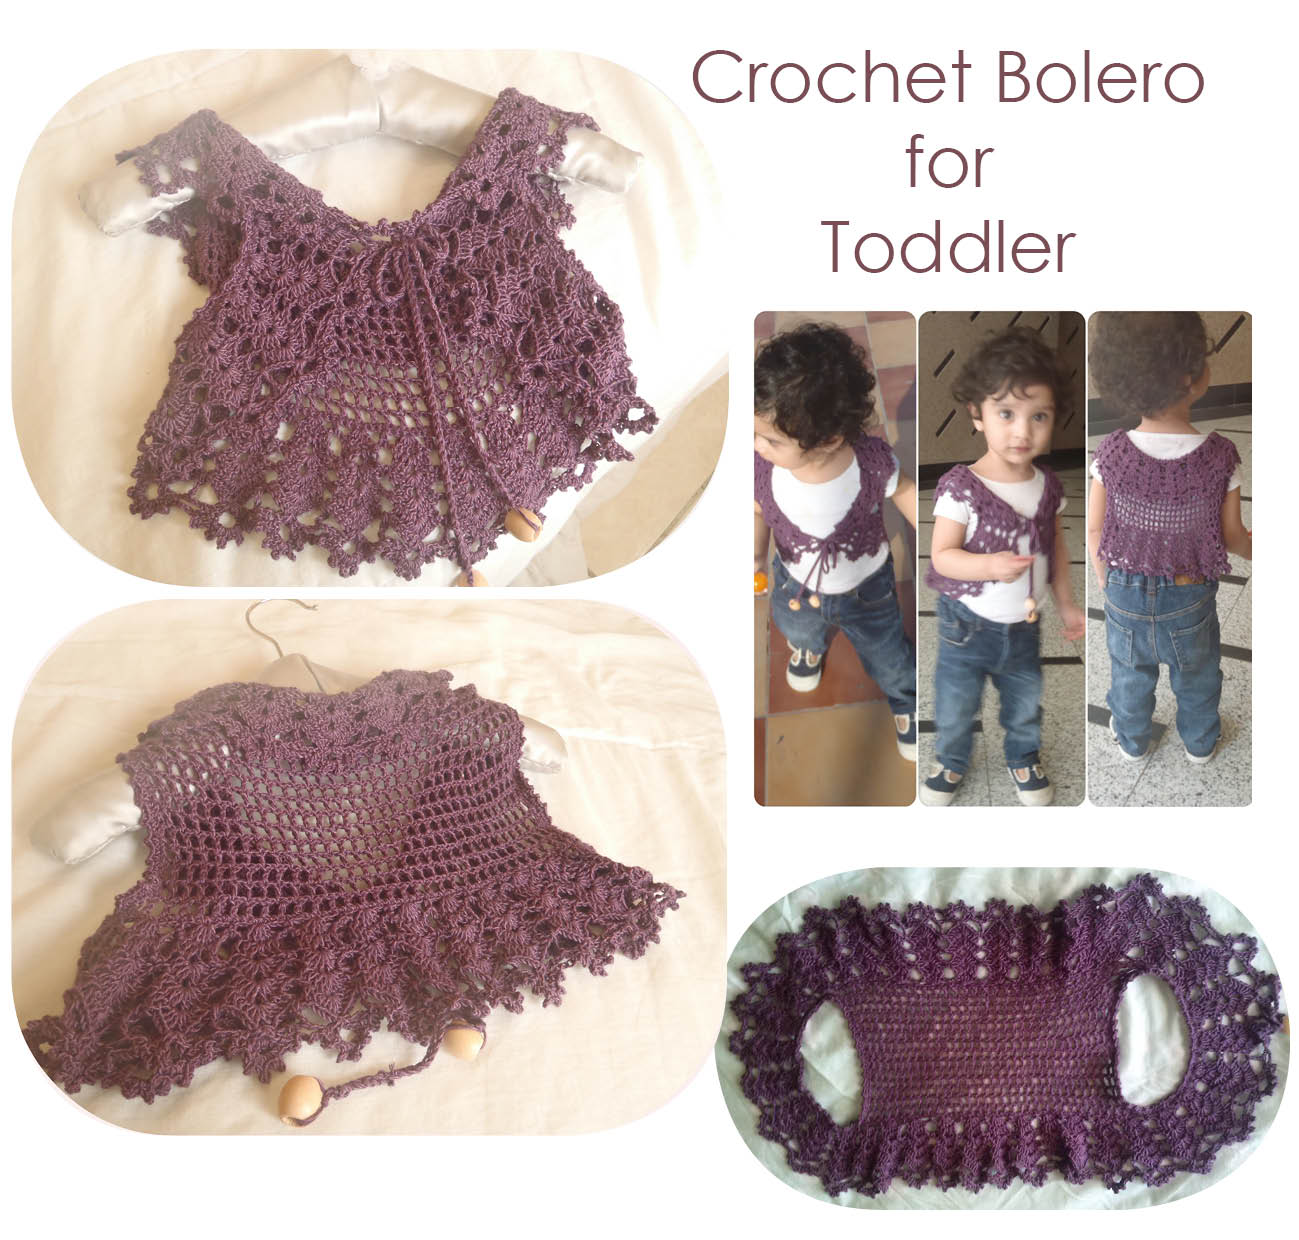 The Zen Crocheter: Lace vest / bolero / shrugs for toddler